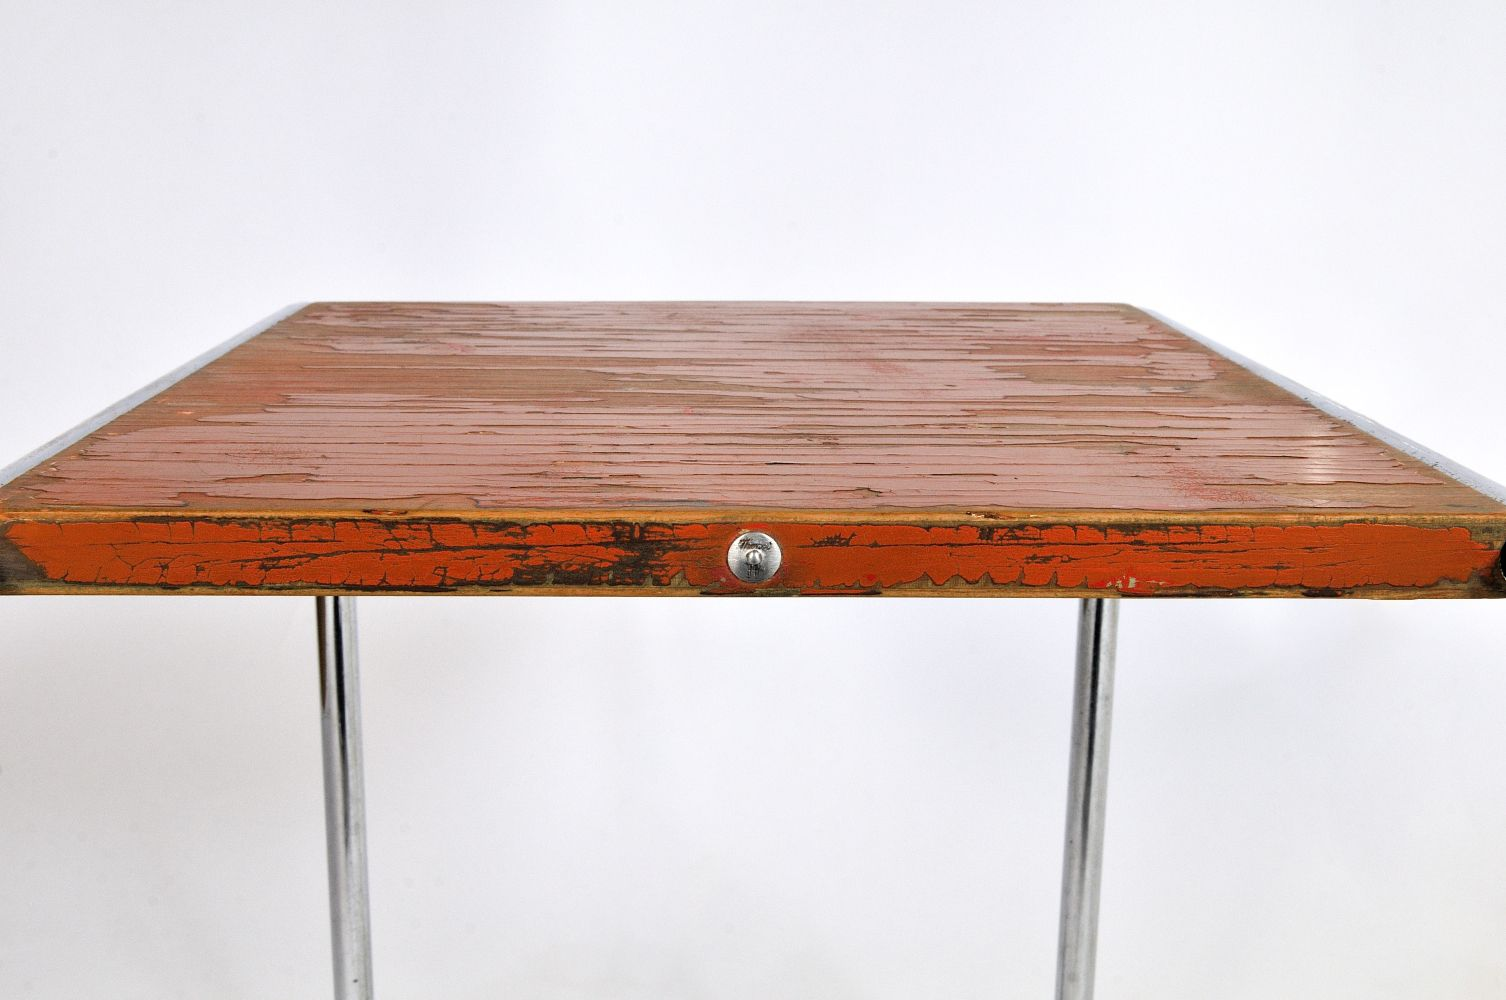 Vintage b9 orange tubular nesting table by marcel breuer for price per piece geotapseo Images